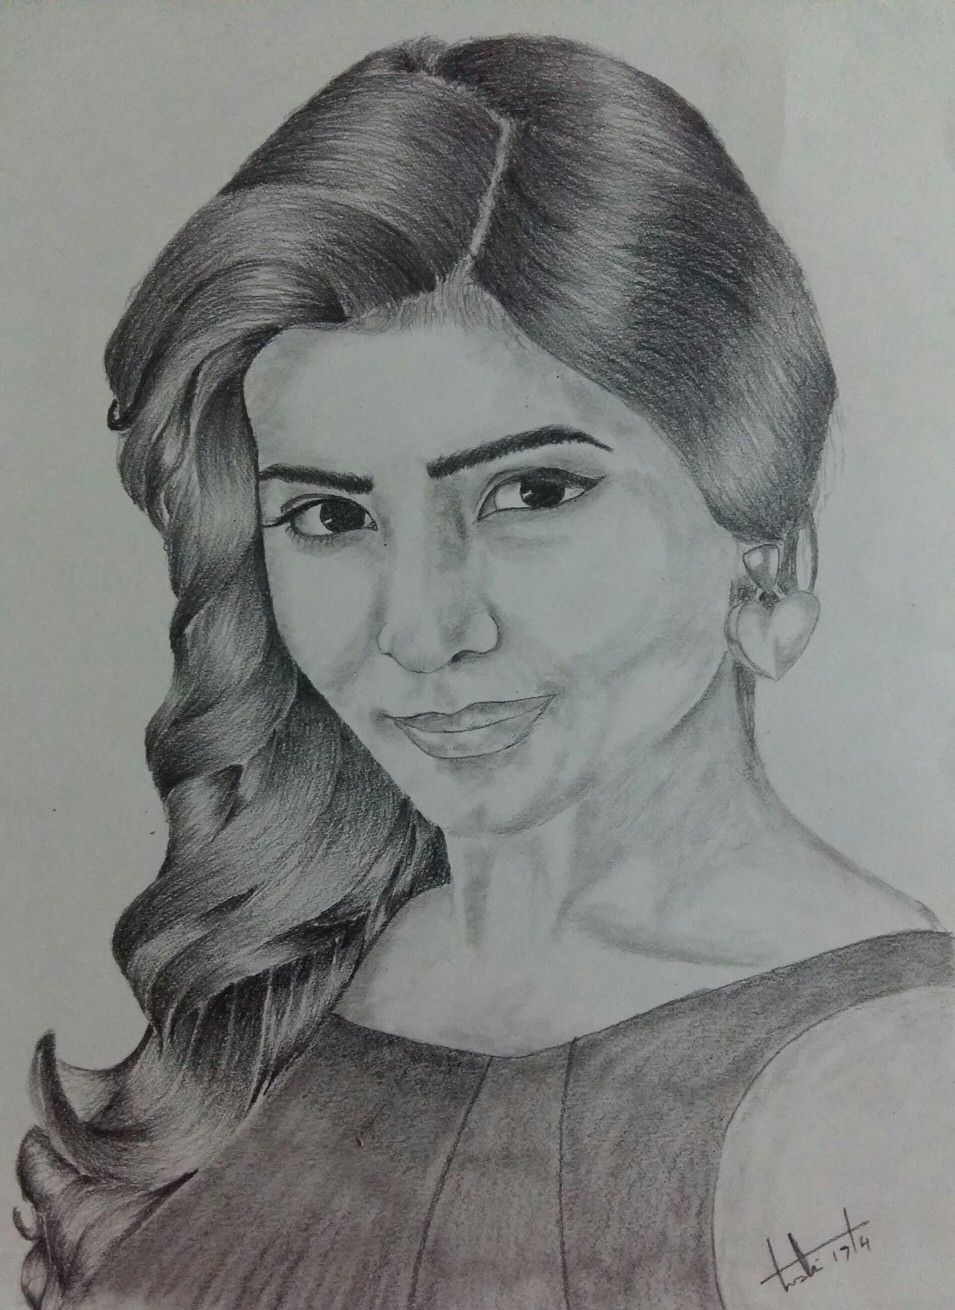 Samantha Pencil Sketch